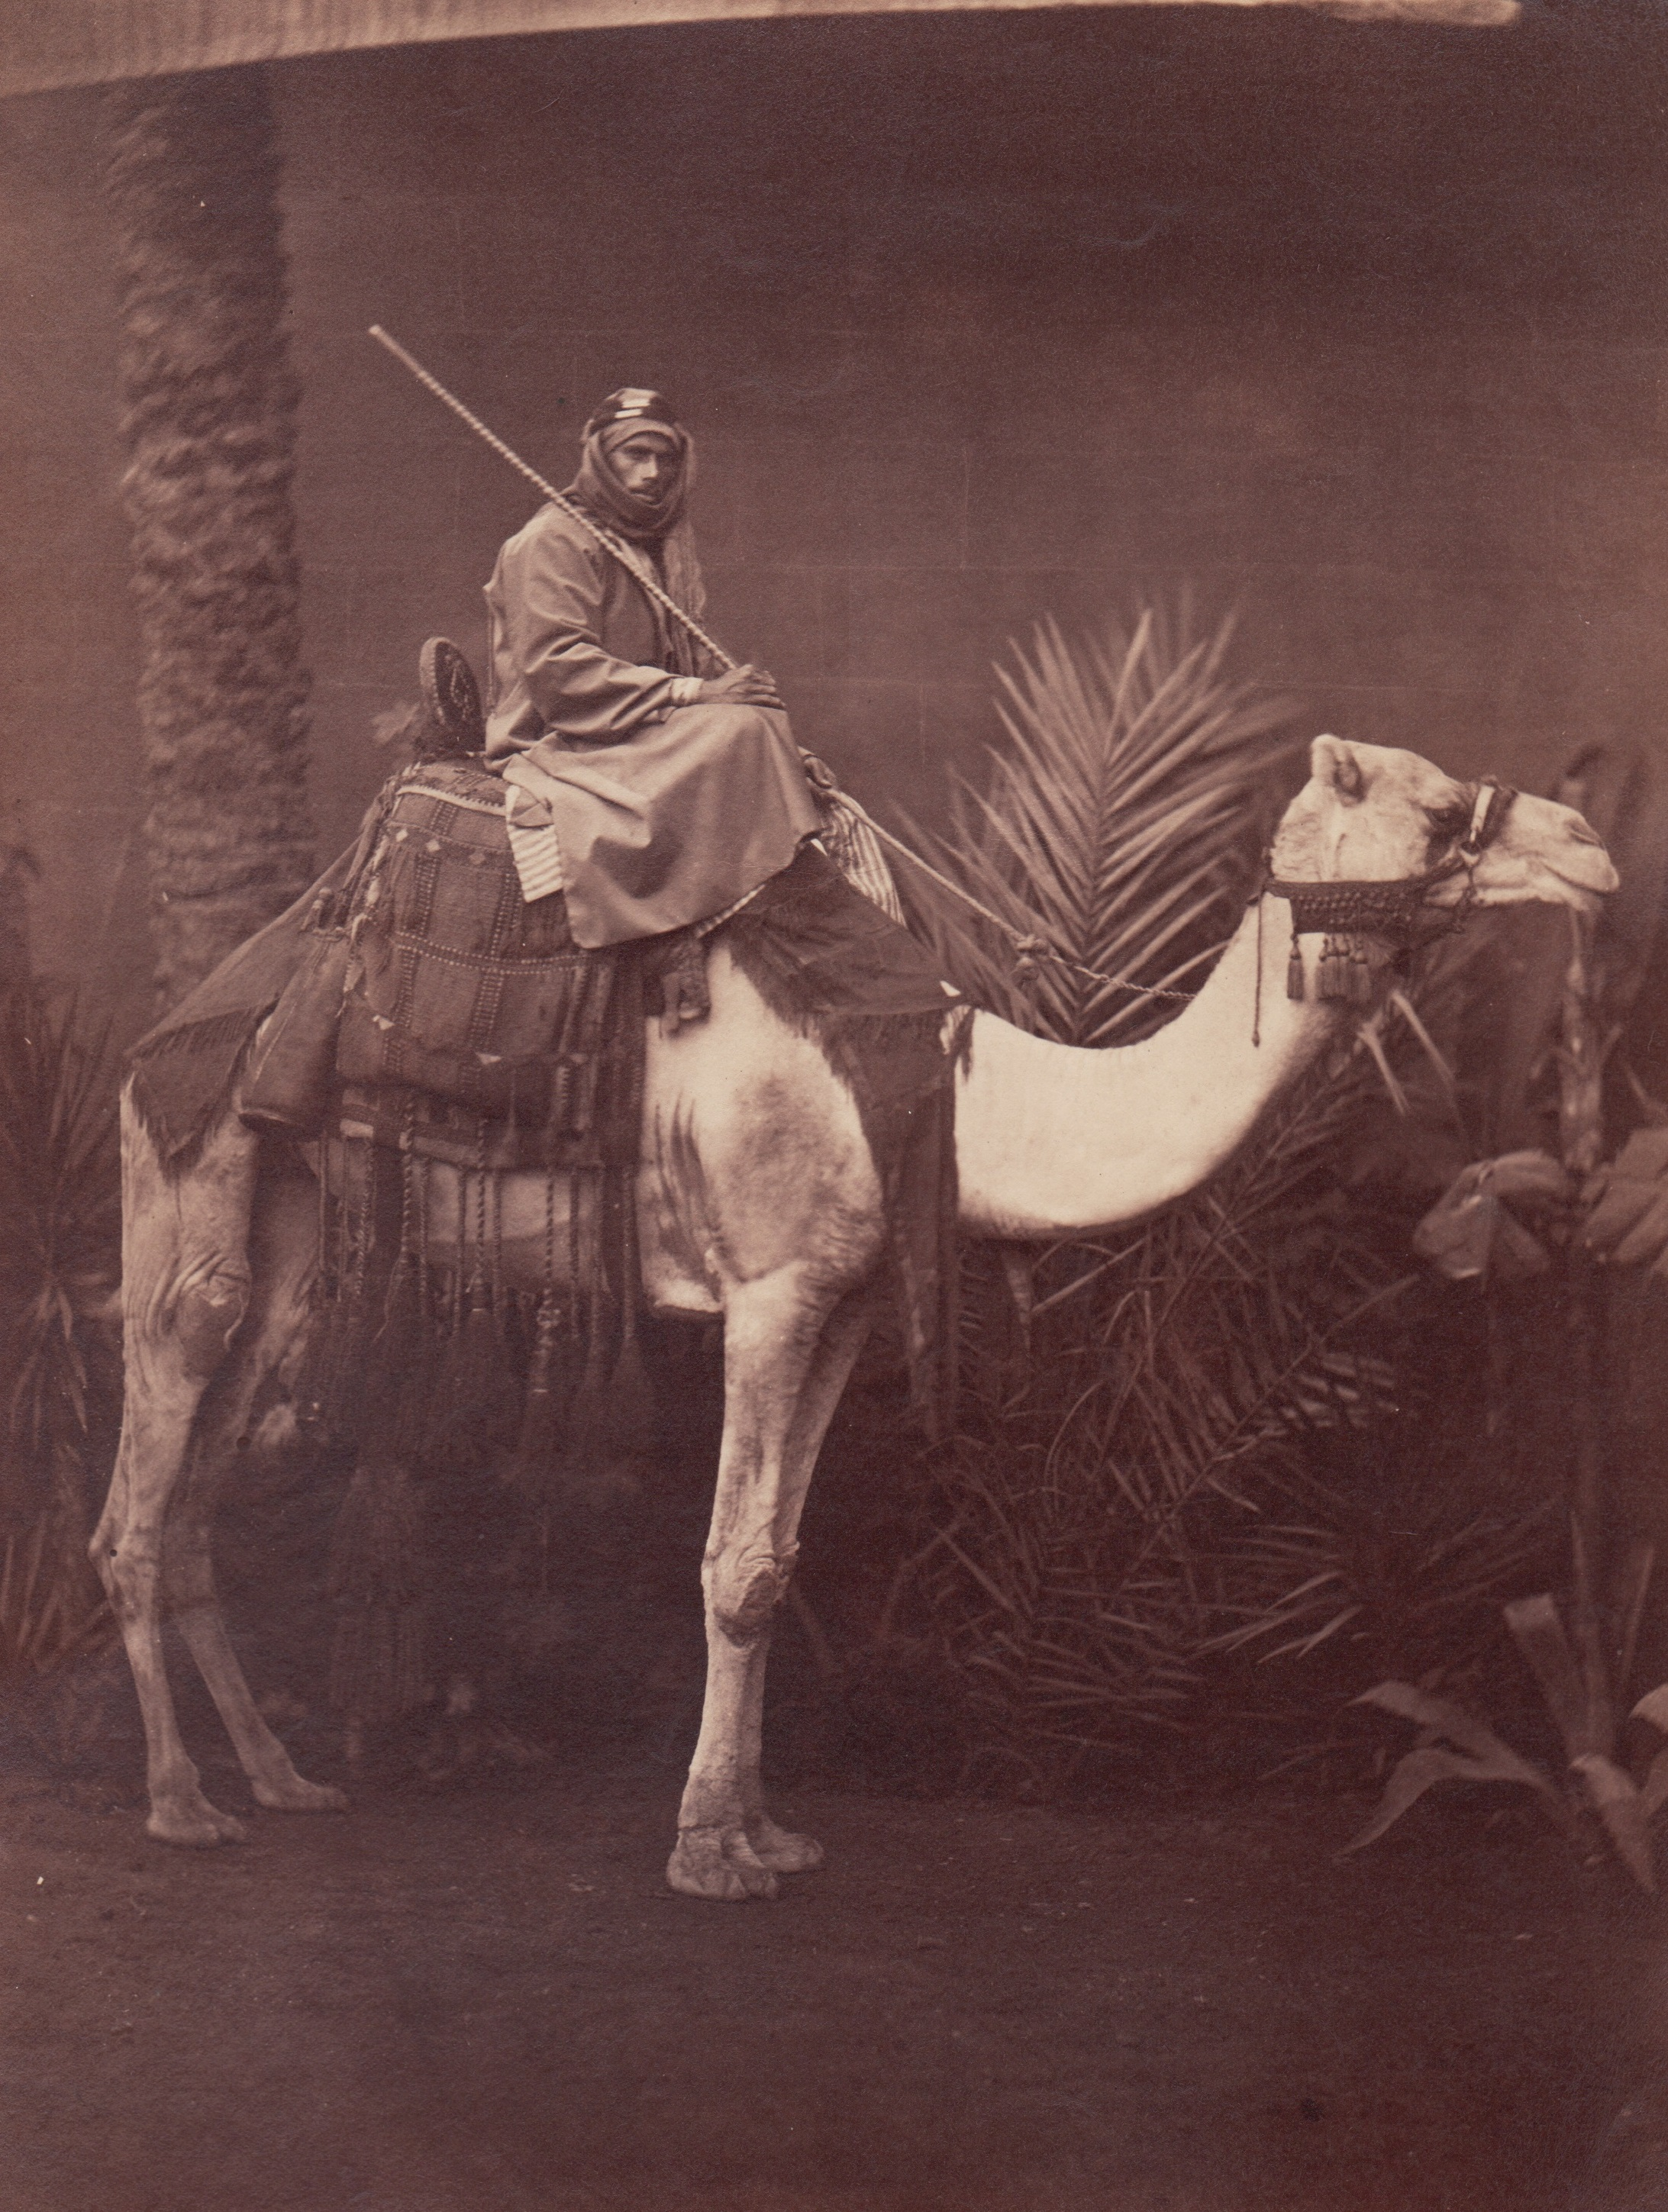 Man on Camel in Studio